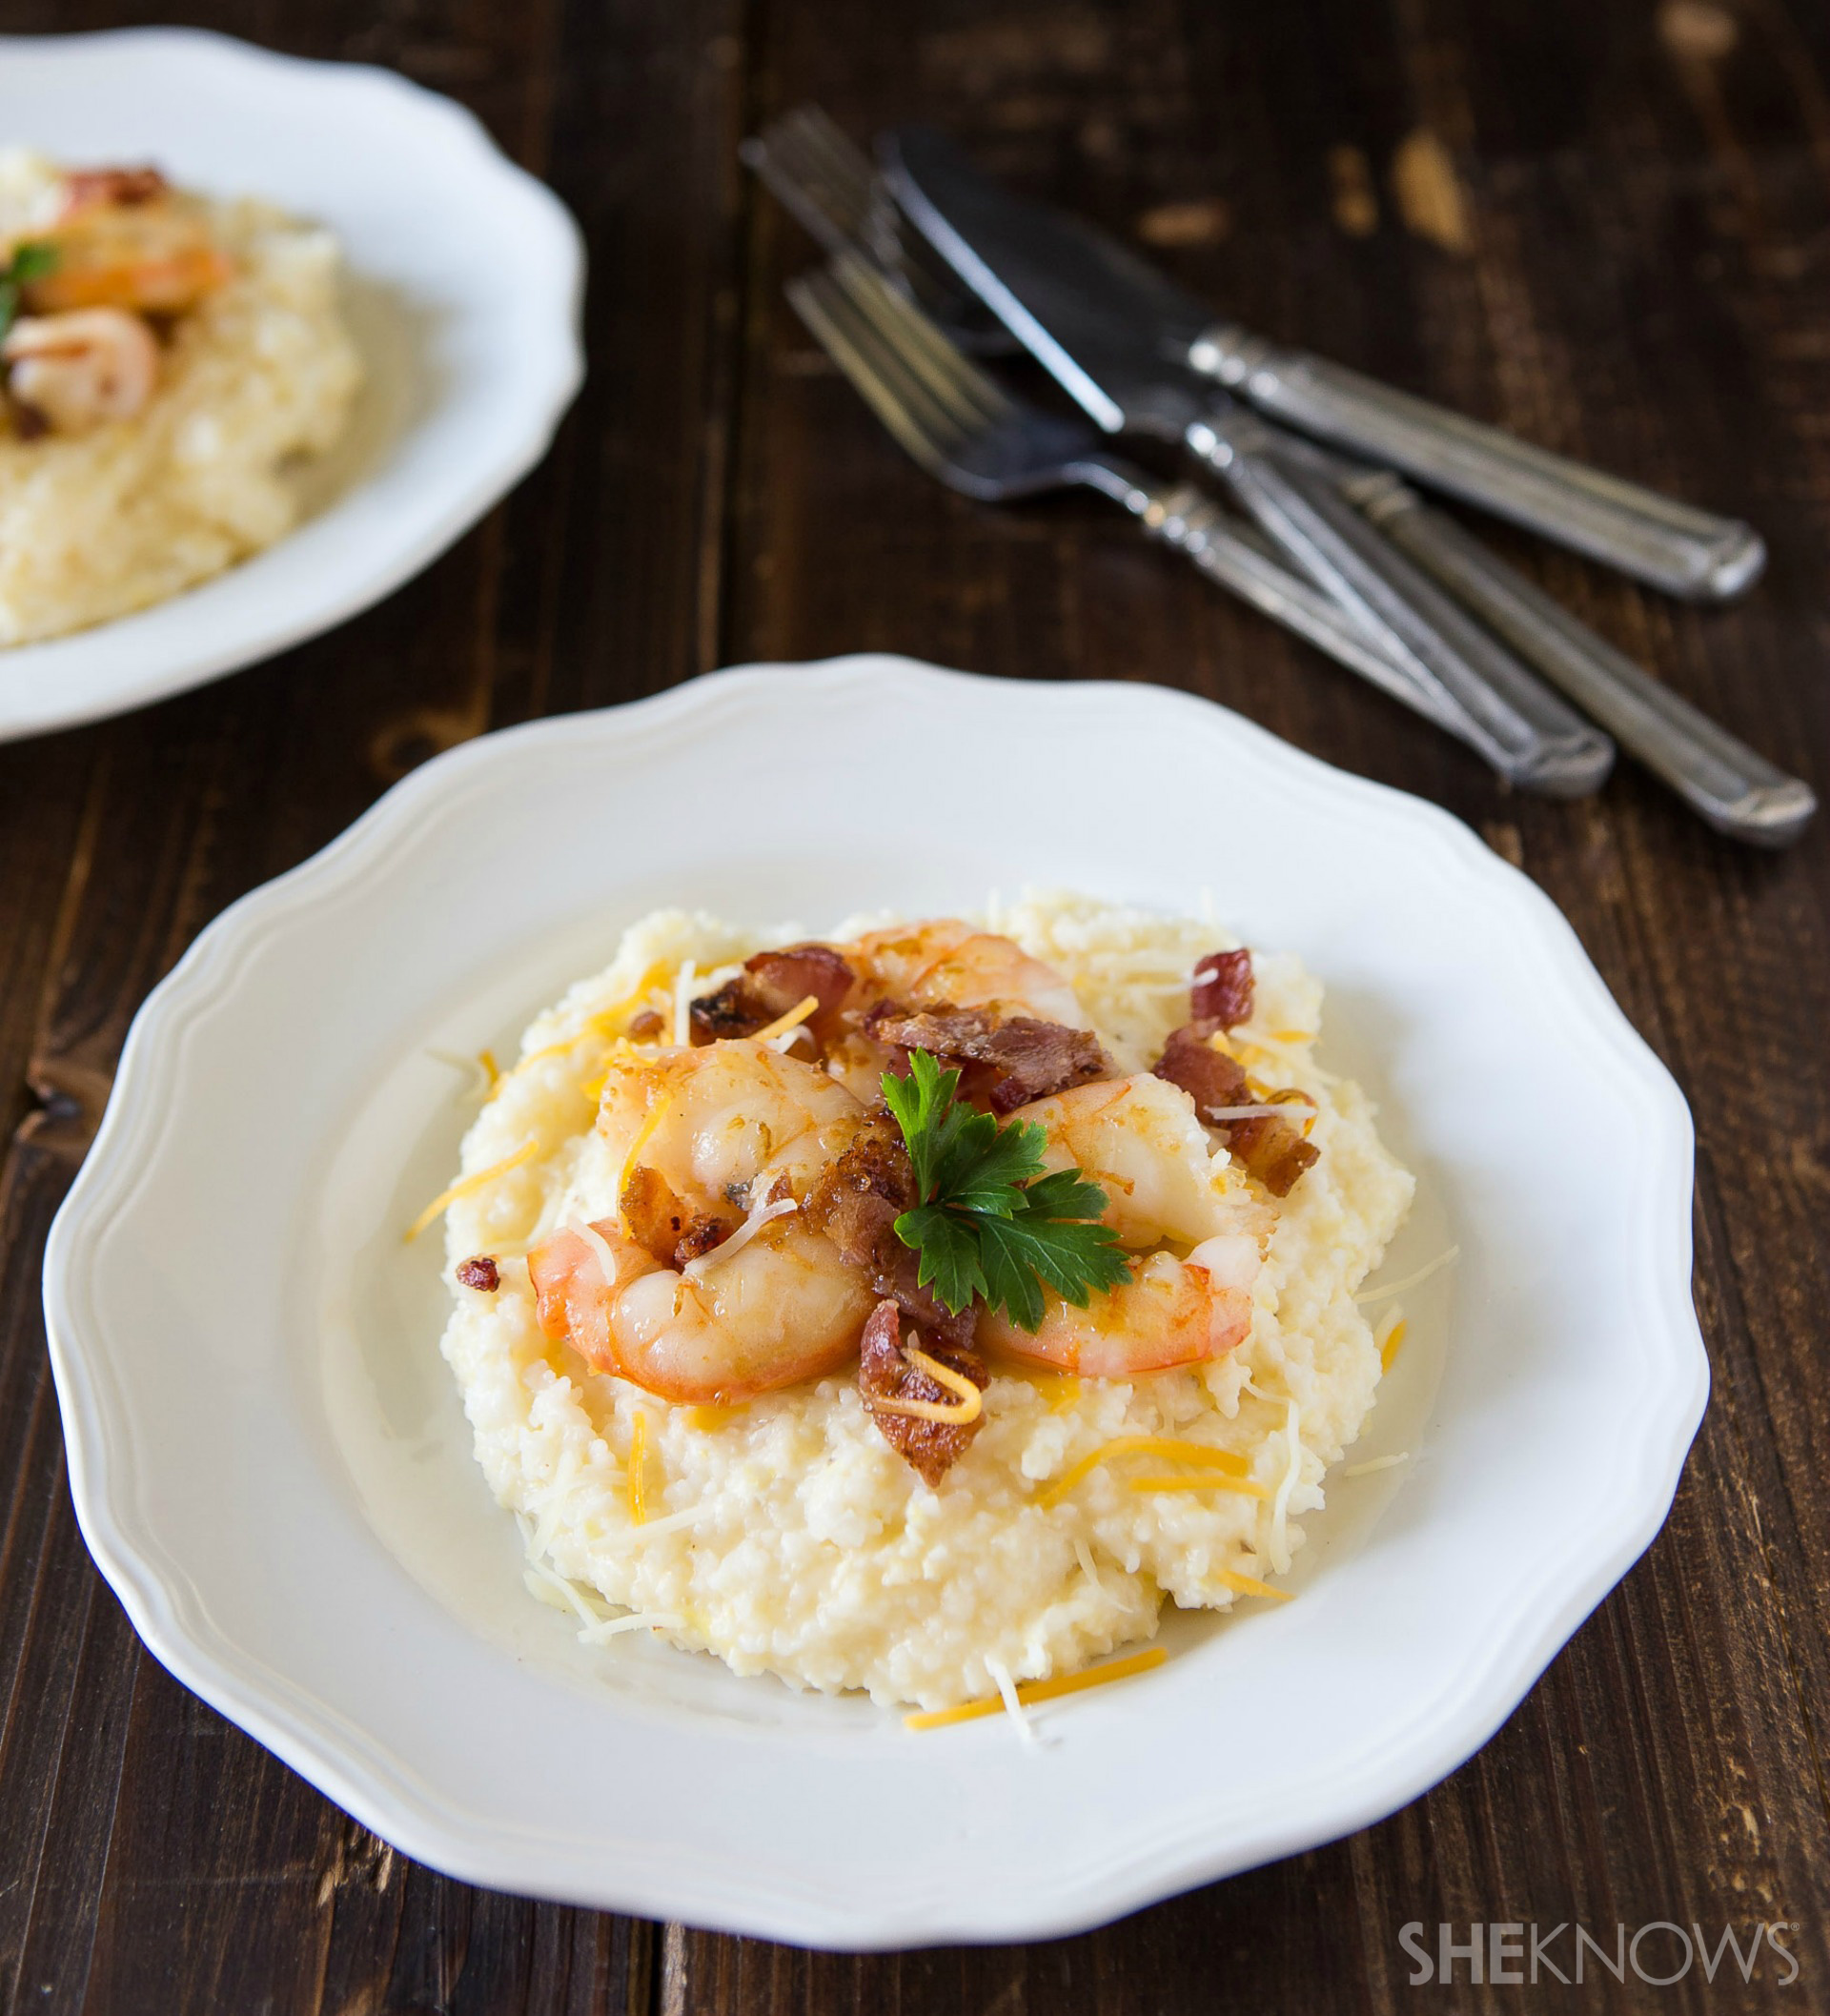 Cheddar stone ground grits with bacon and shrimp